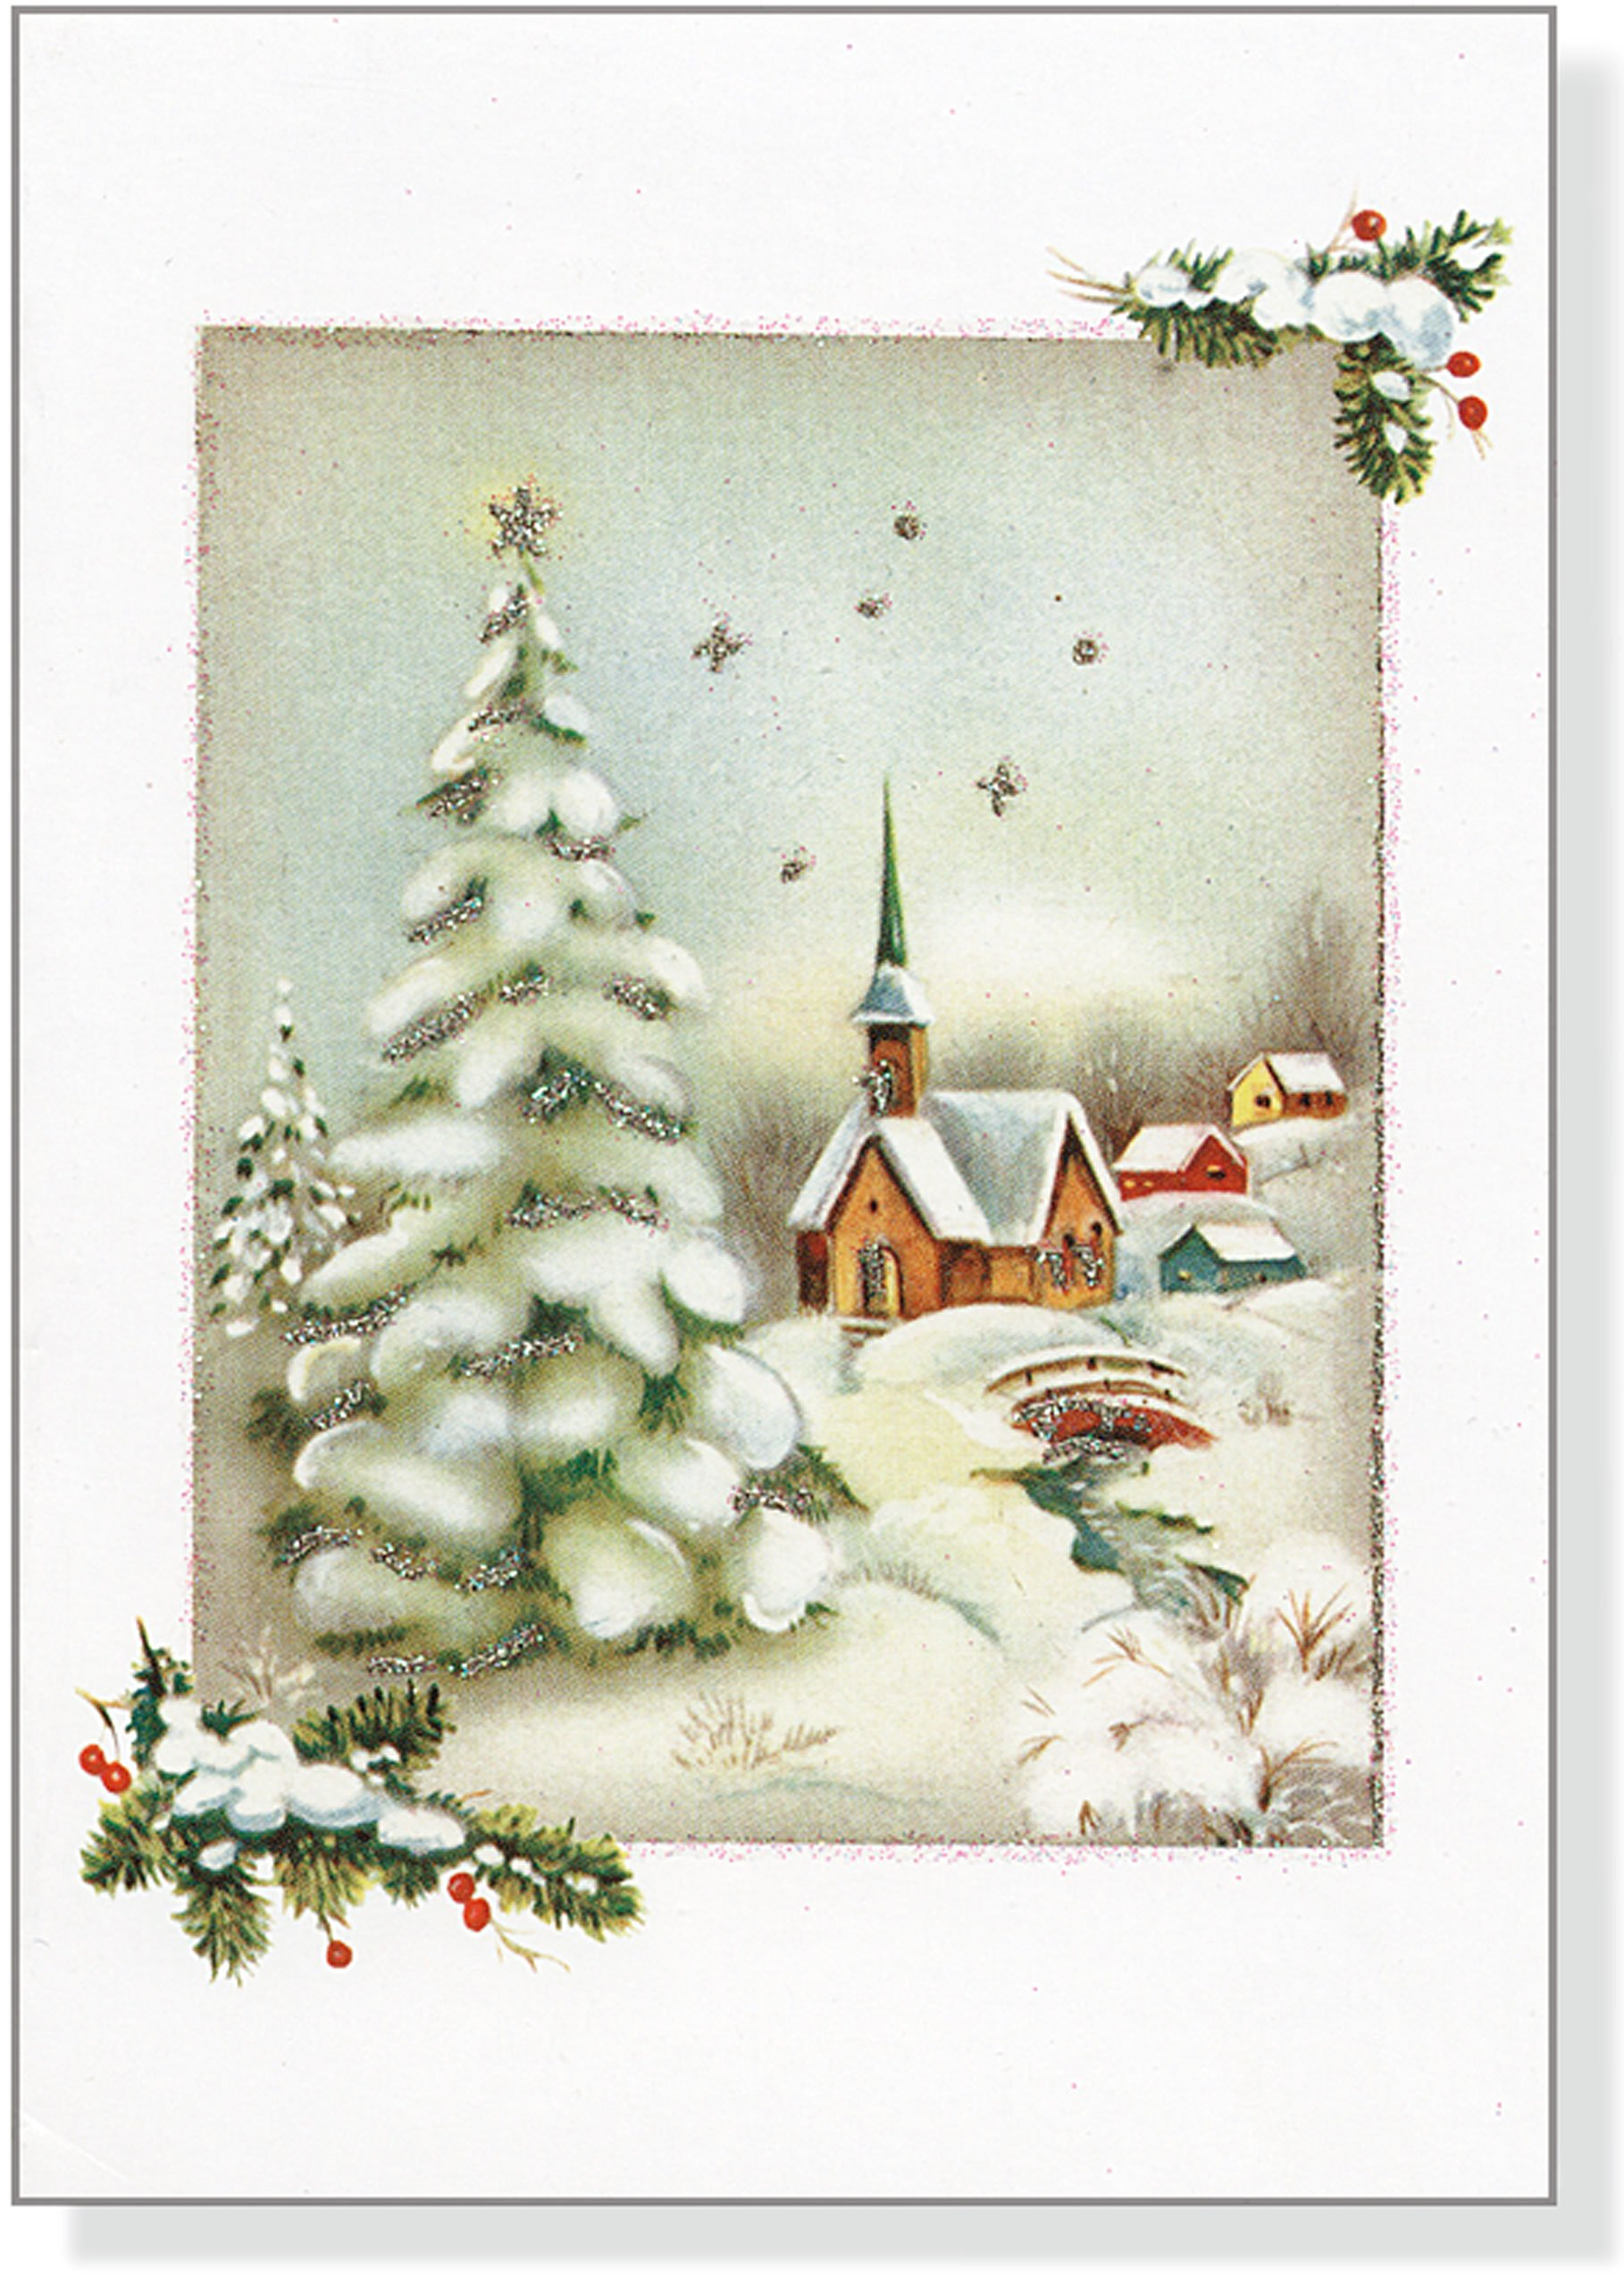 vintage winter church small boxed holiday cards christmas cards holiday cards greeting cards inc peter pauper press 9781441304841 amazoncom books - Holiday Christmas Cards